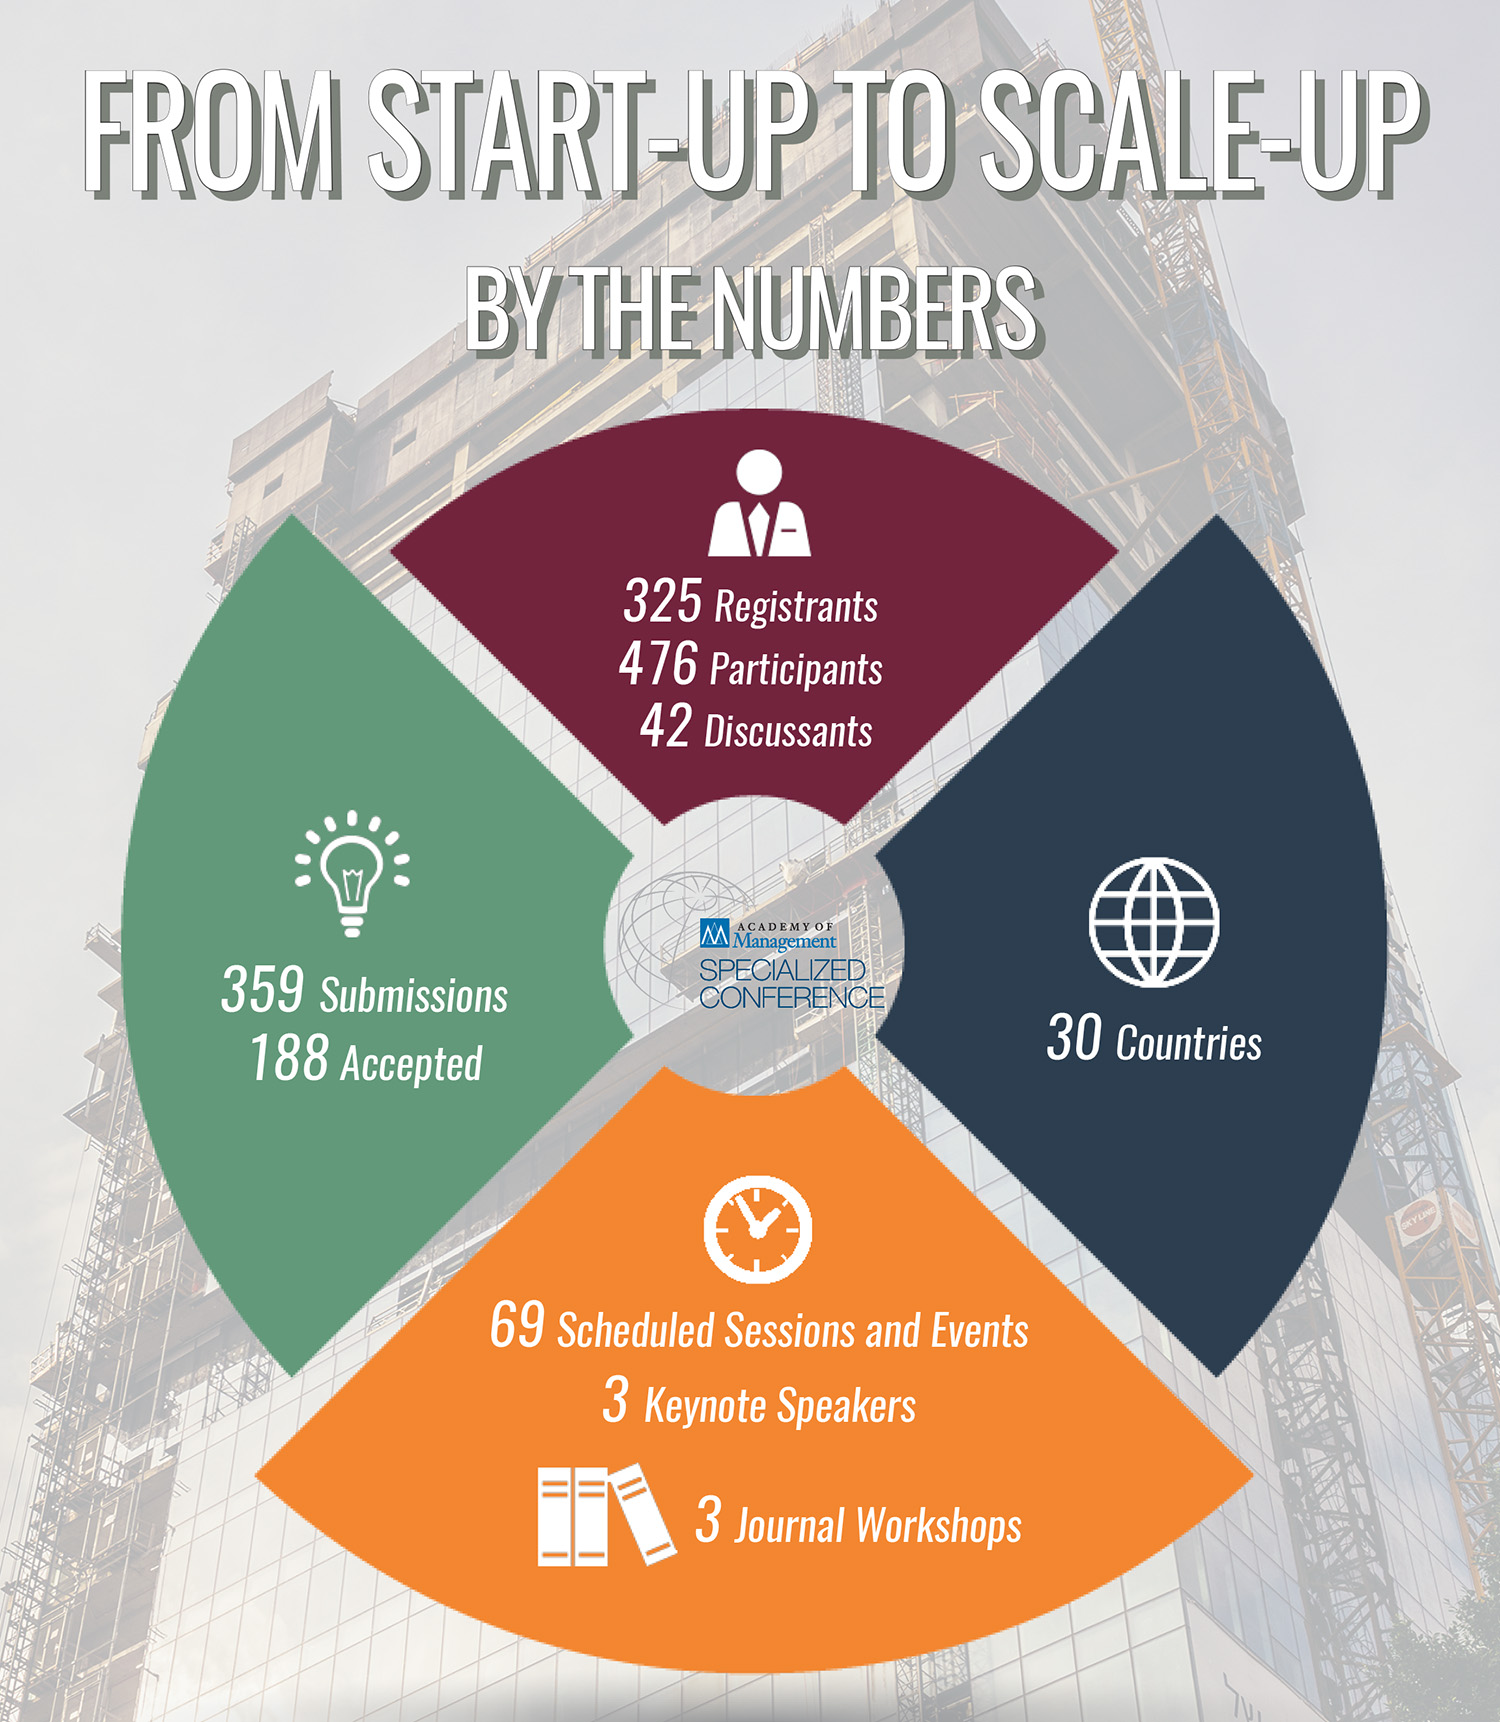 Start-up 2 Scale-up 2018 Conference Stats